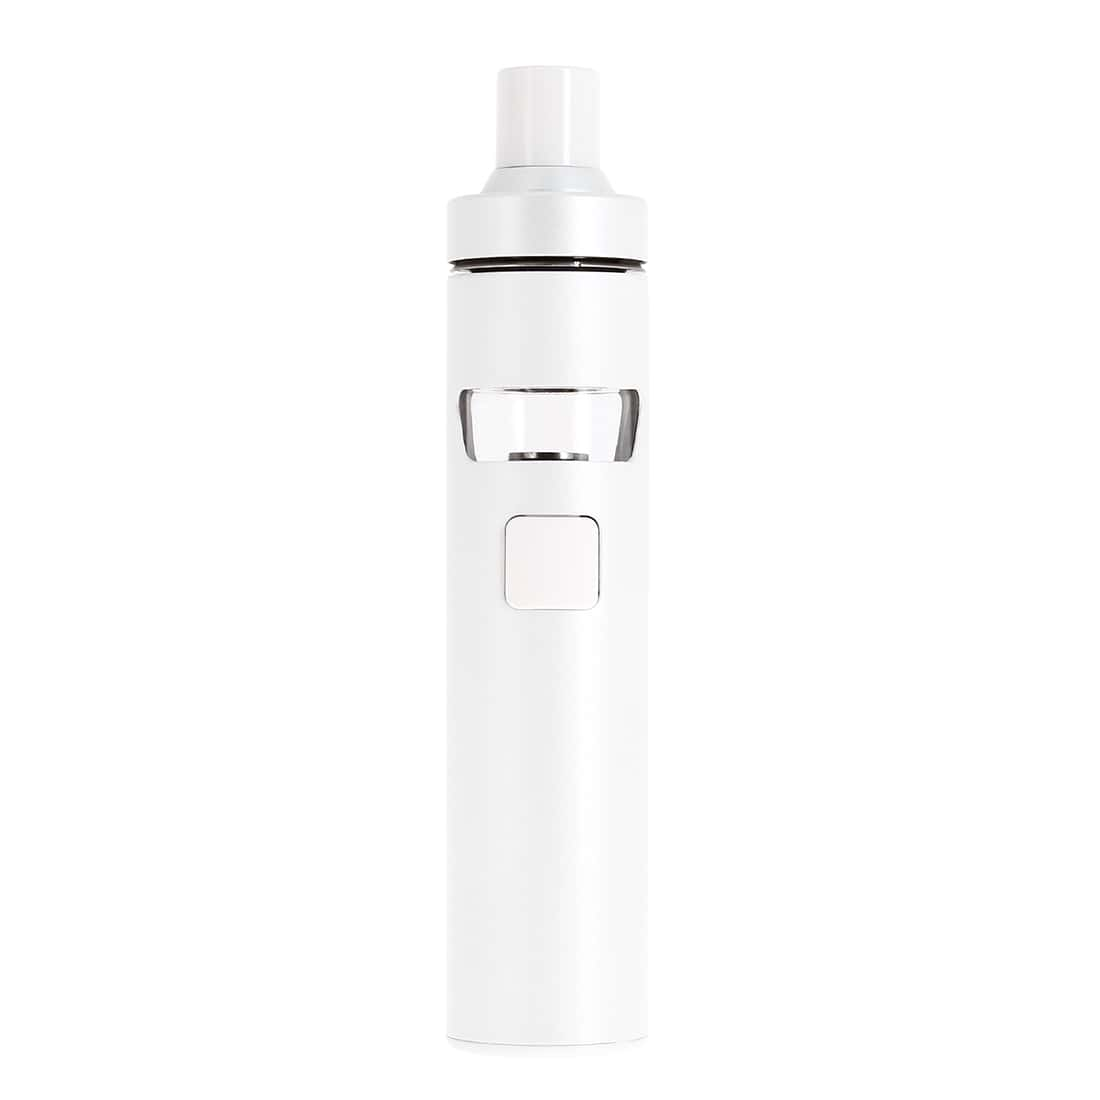 Photo de Cigarette electronique Joyetech eGo AIO D22 blanche